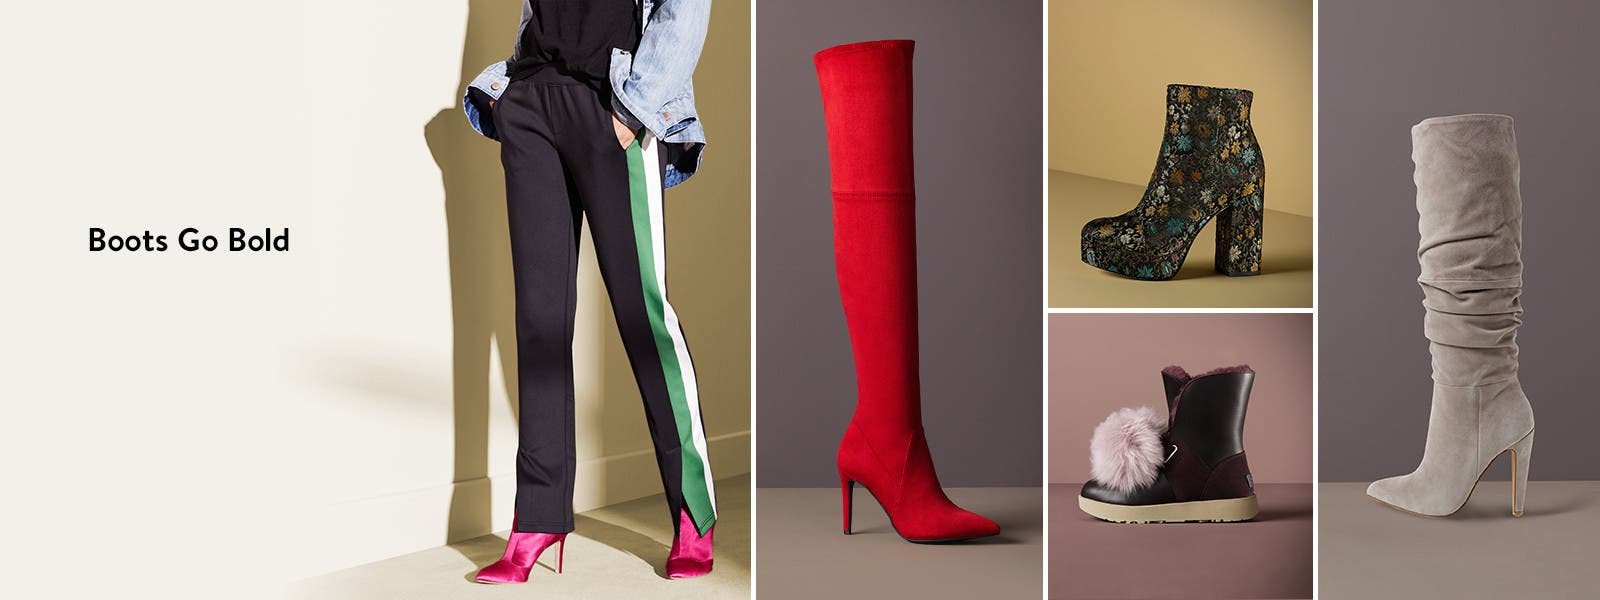 Boots go bold: booties, over-the-knee, under $150, rain and winter, knee-high